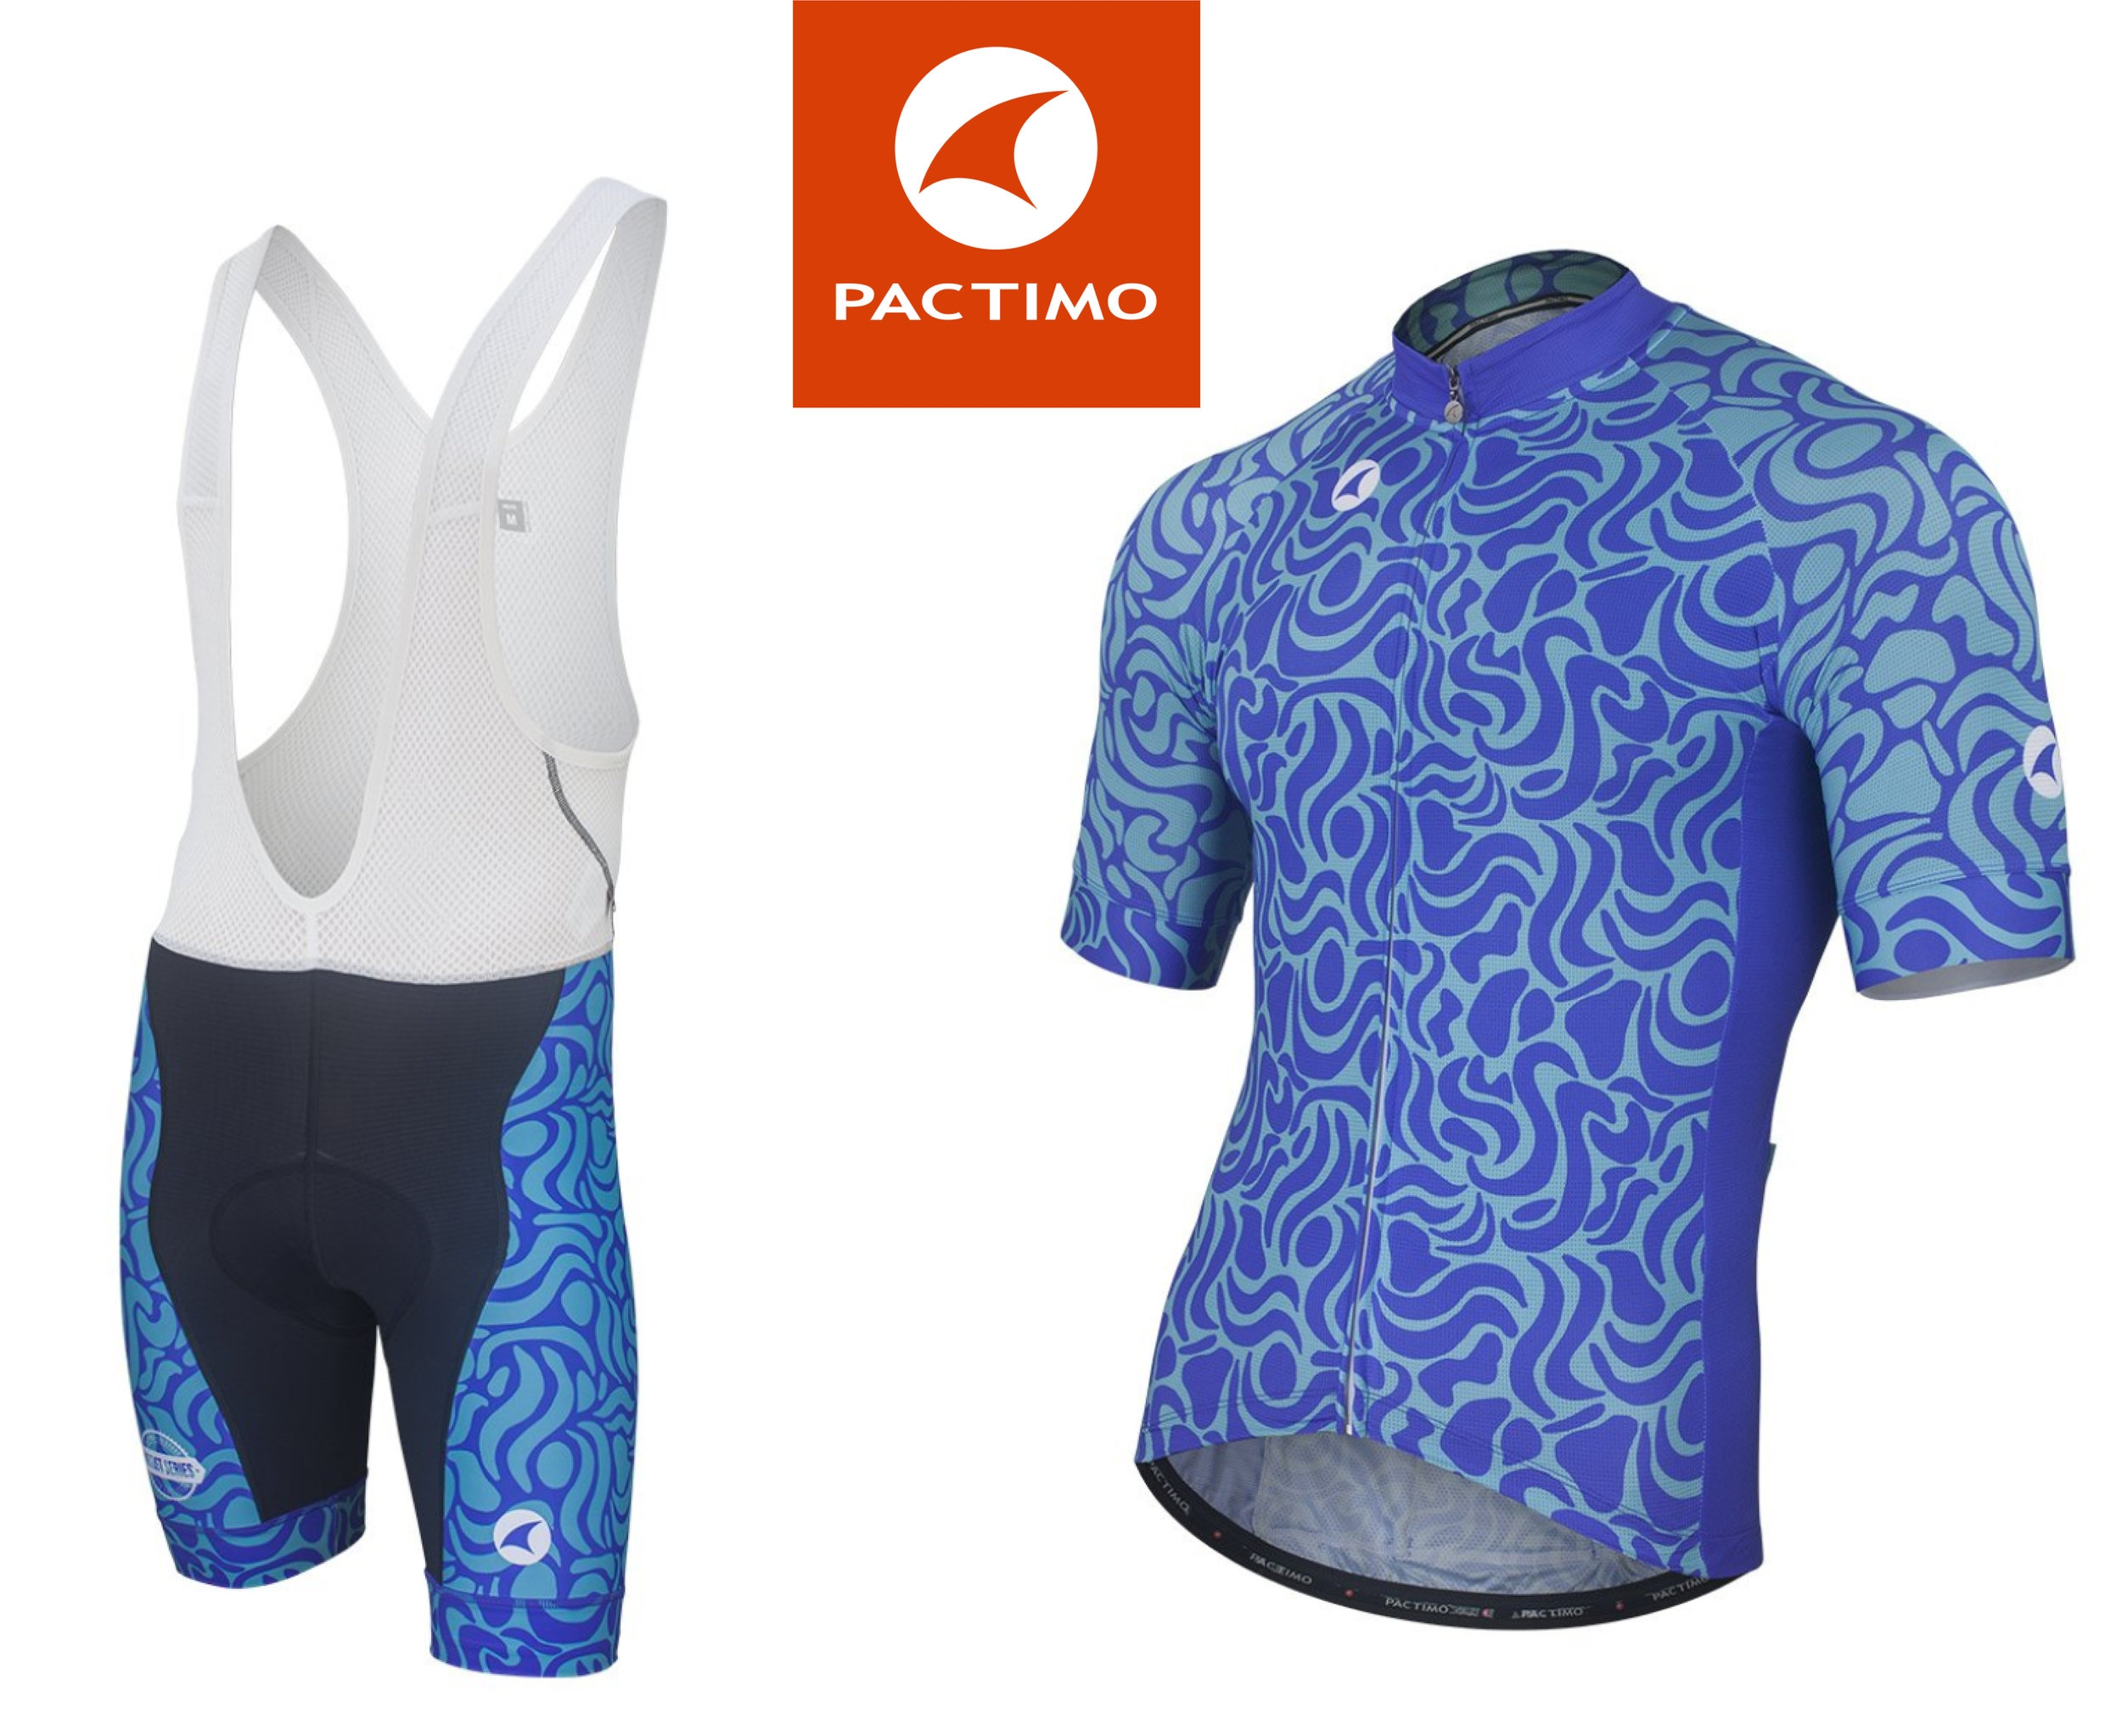 Cycling jersey design for Pactimo - Get a unique gift for your athletic friends! I designed these jerseys for Pactimo in fun colors to inspire the adventure in all of us! More patterns and designs on site for Women and Men!